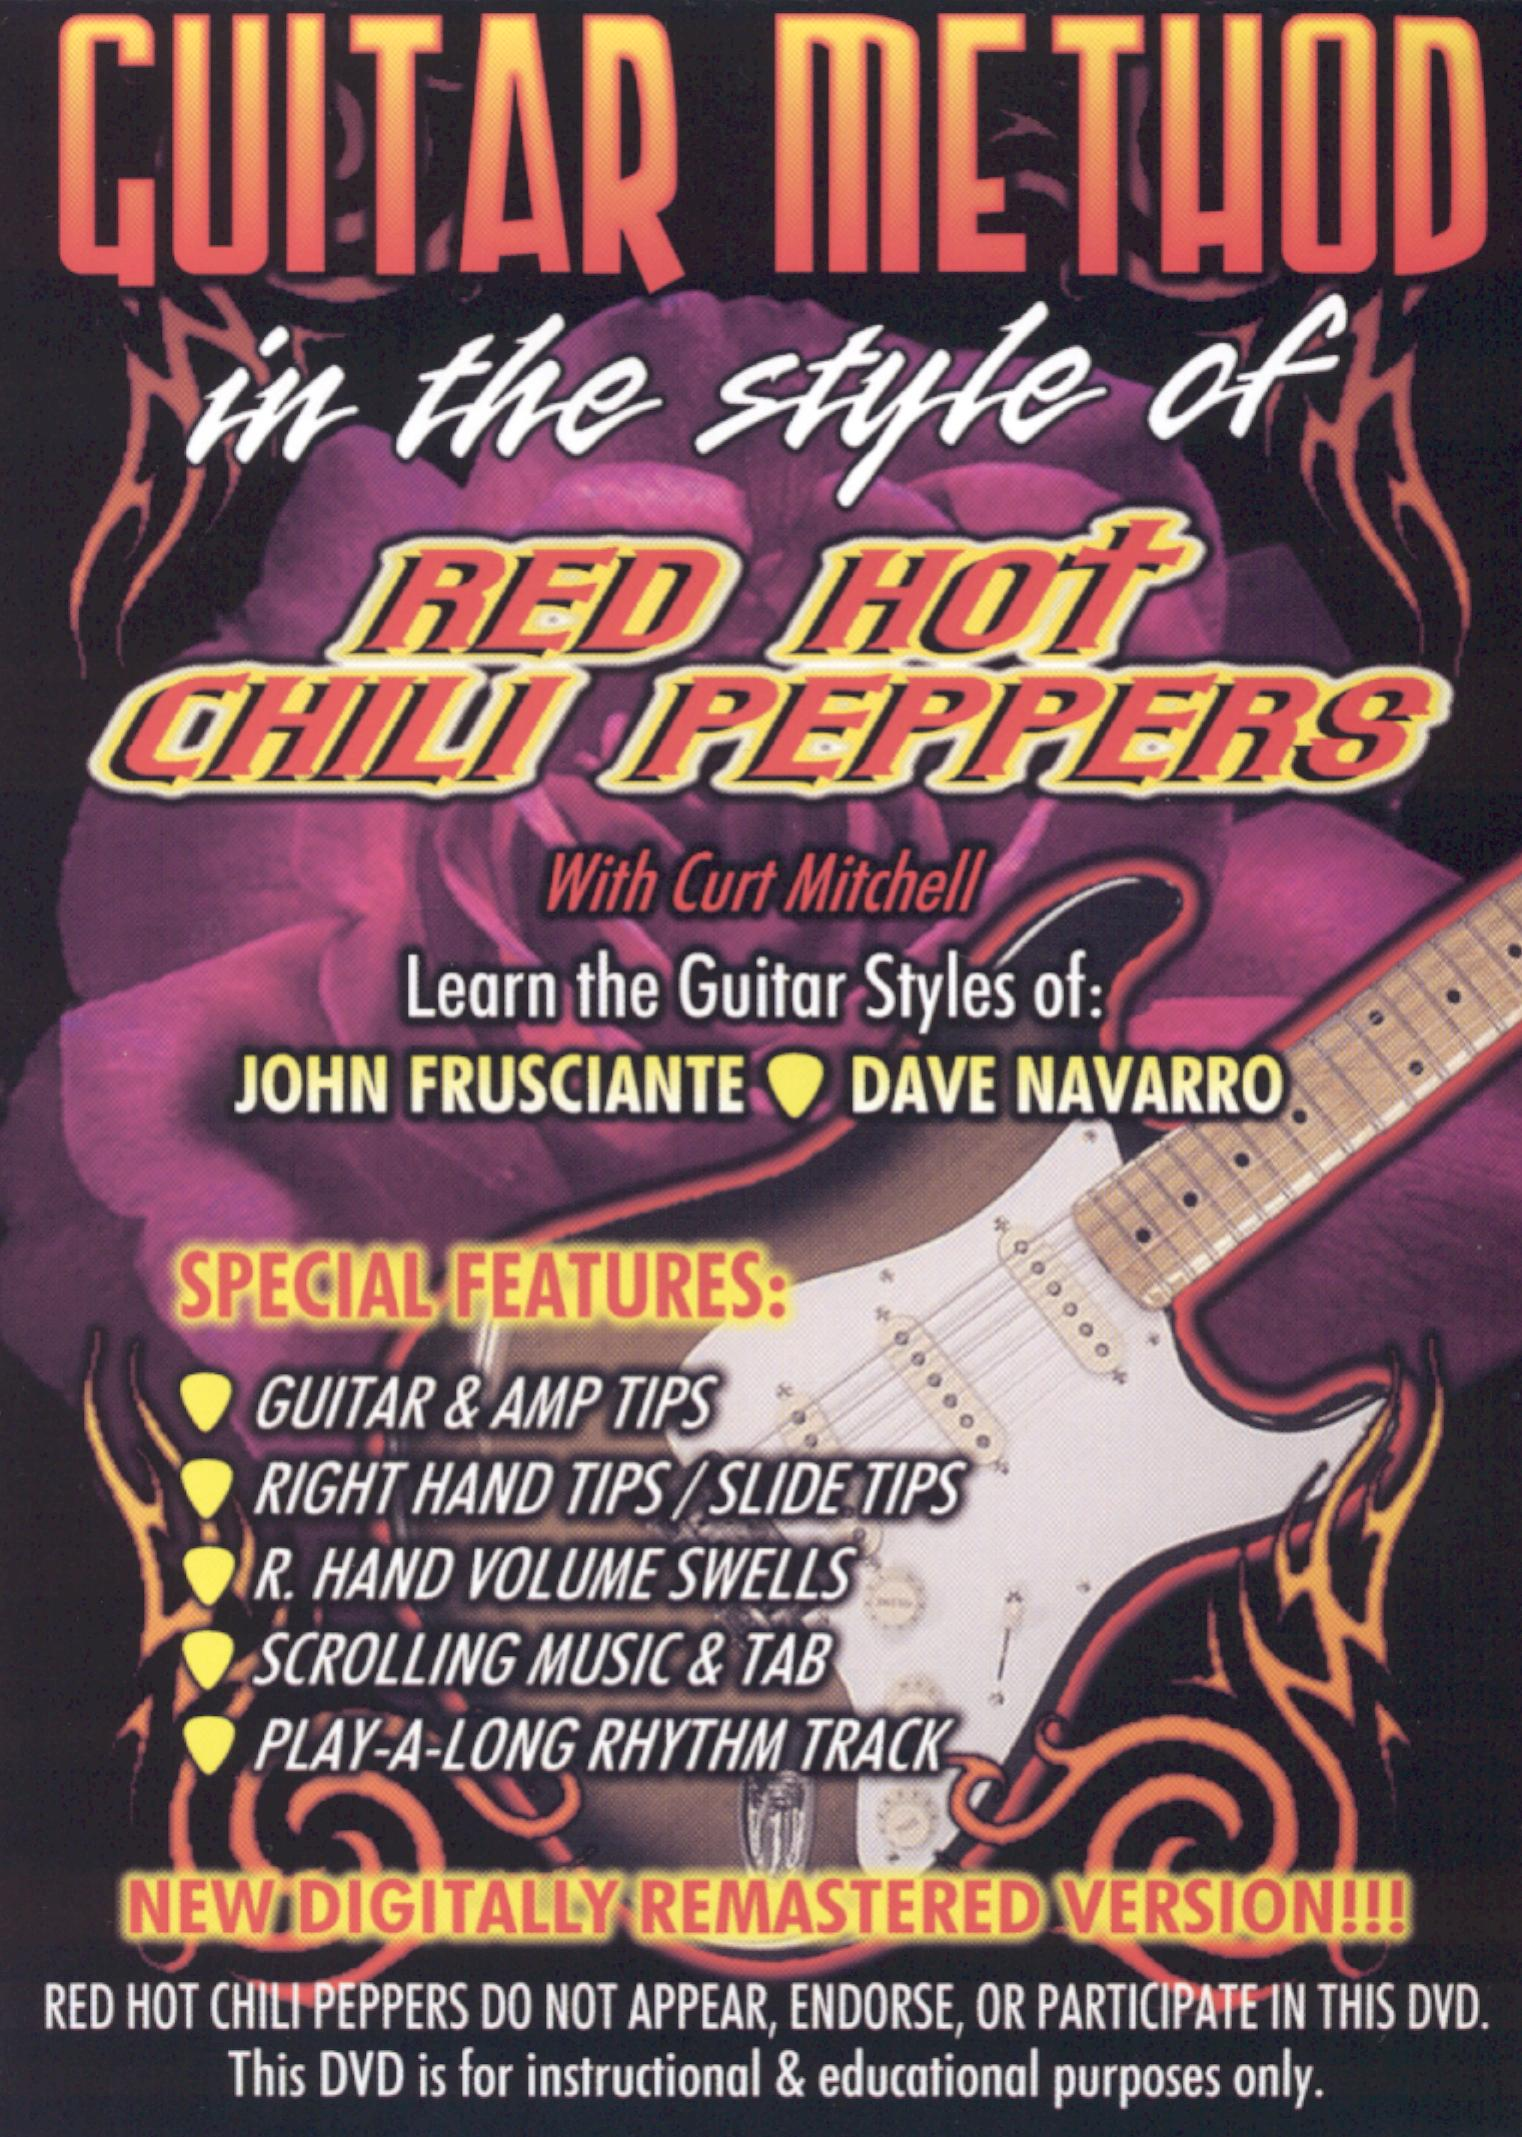 Guitar Method: In the Style of Red Hot Chili Peppers